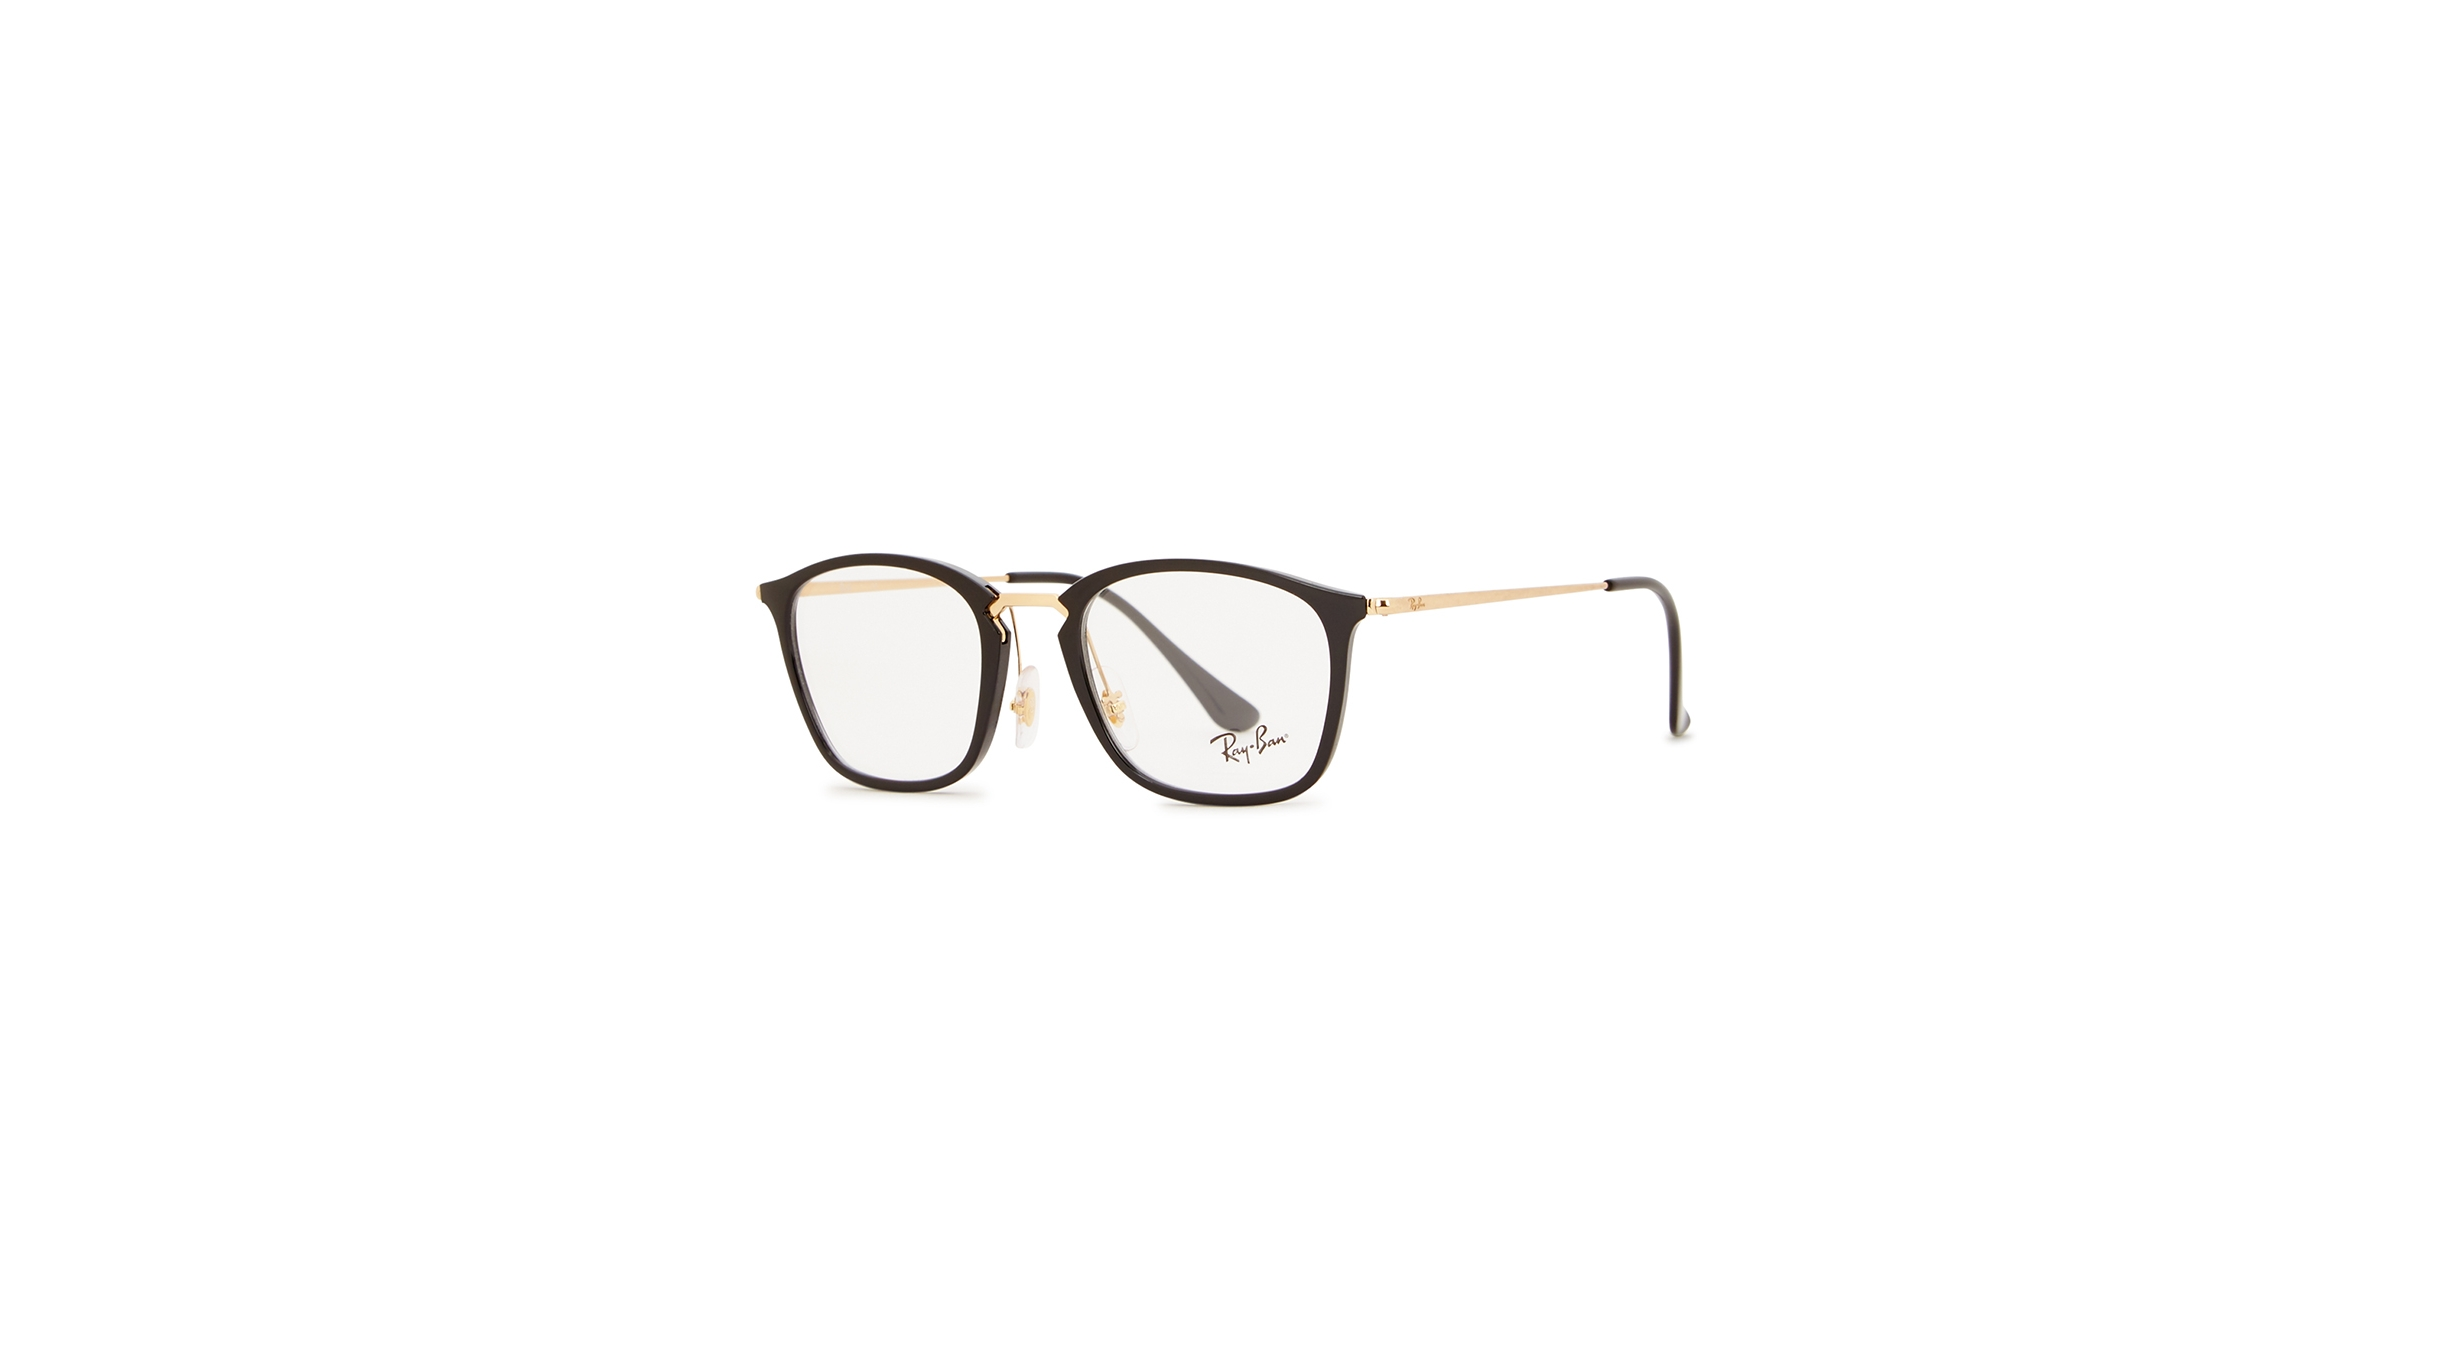 11a9355a371 Ray-Ban Black clubmaster-style optical glasses - Harvey Nichols